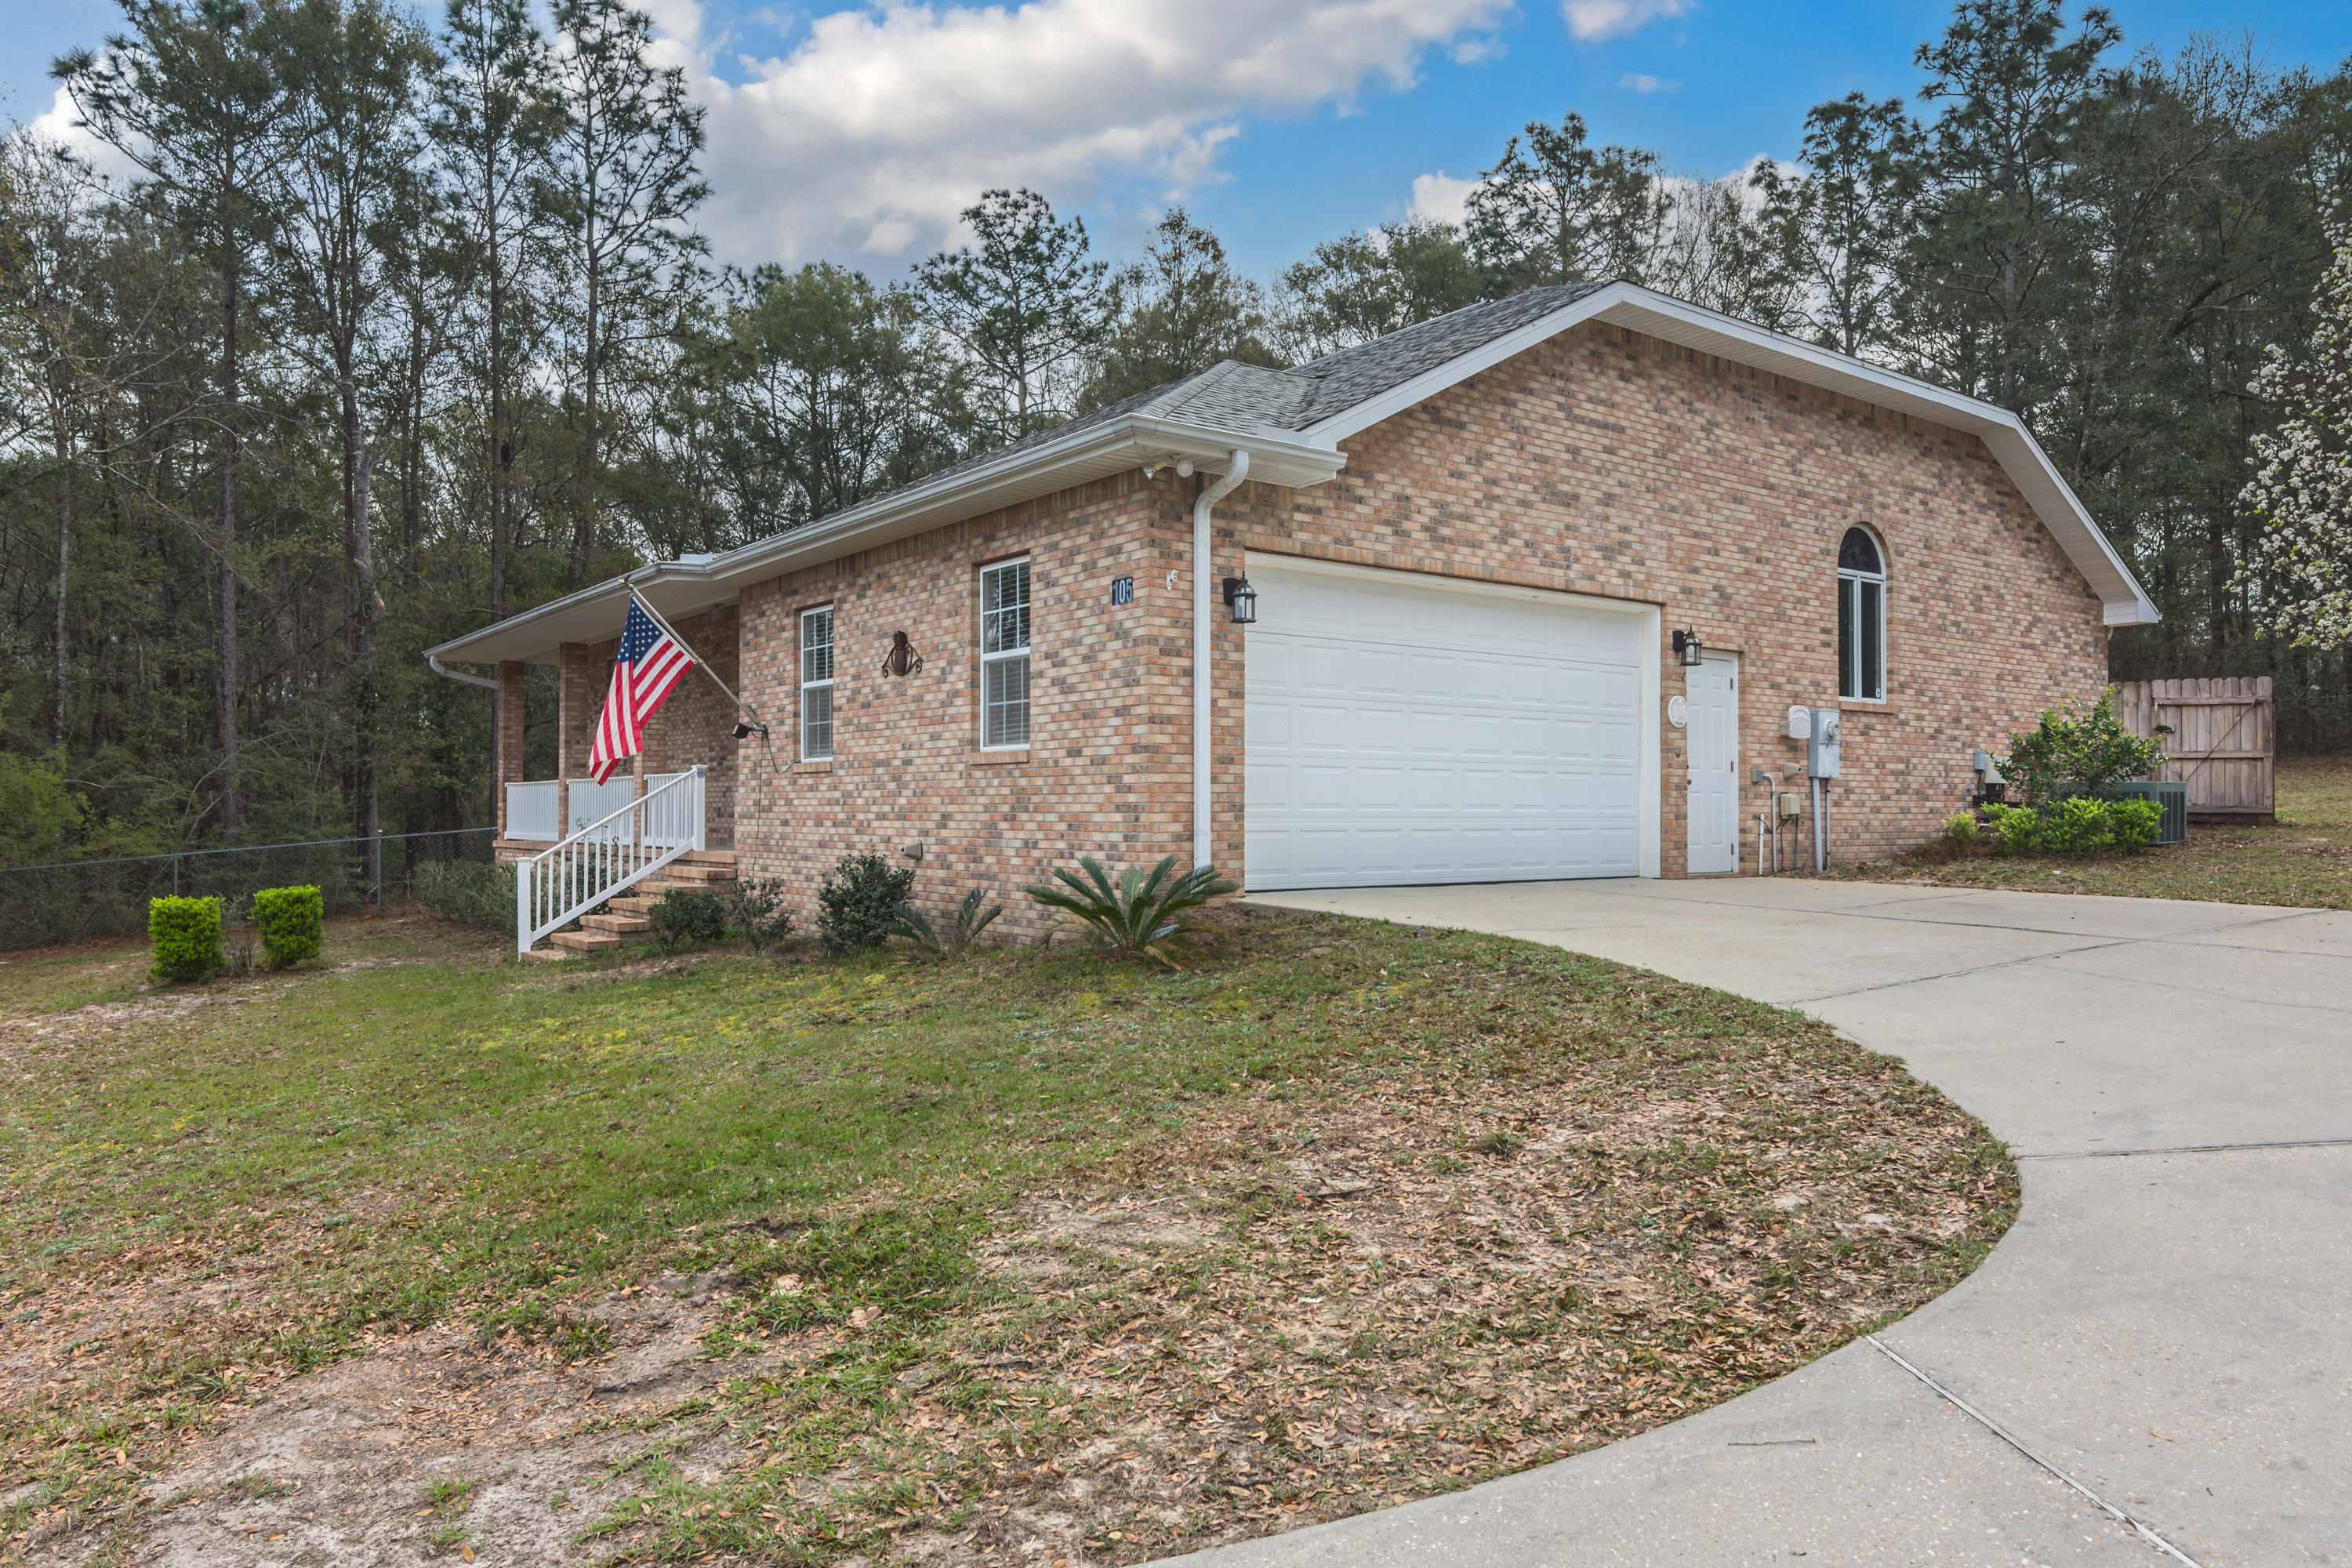 Photo of home for sale at 105 Cheyenne, Crestview FL